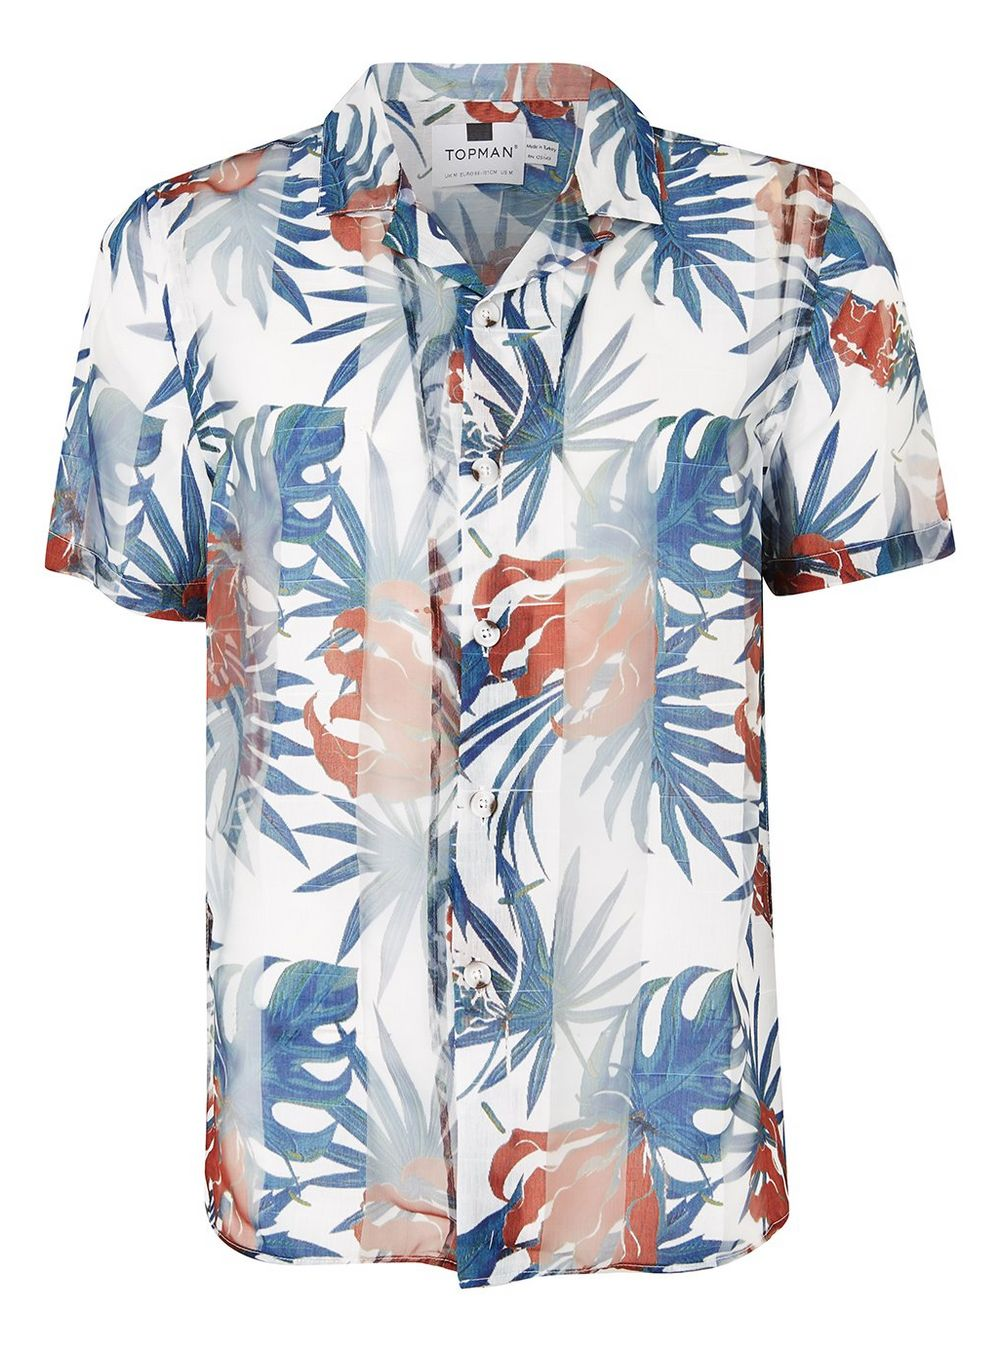 Palm print shirt - £35 at Topman